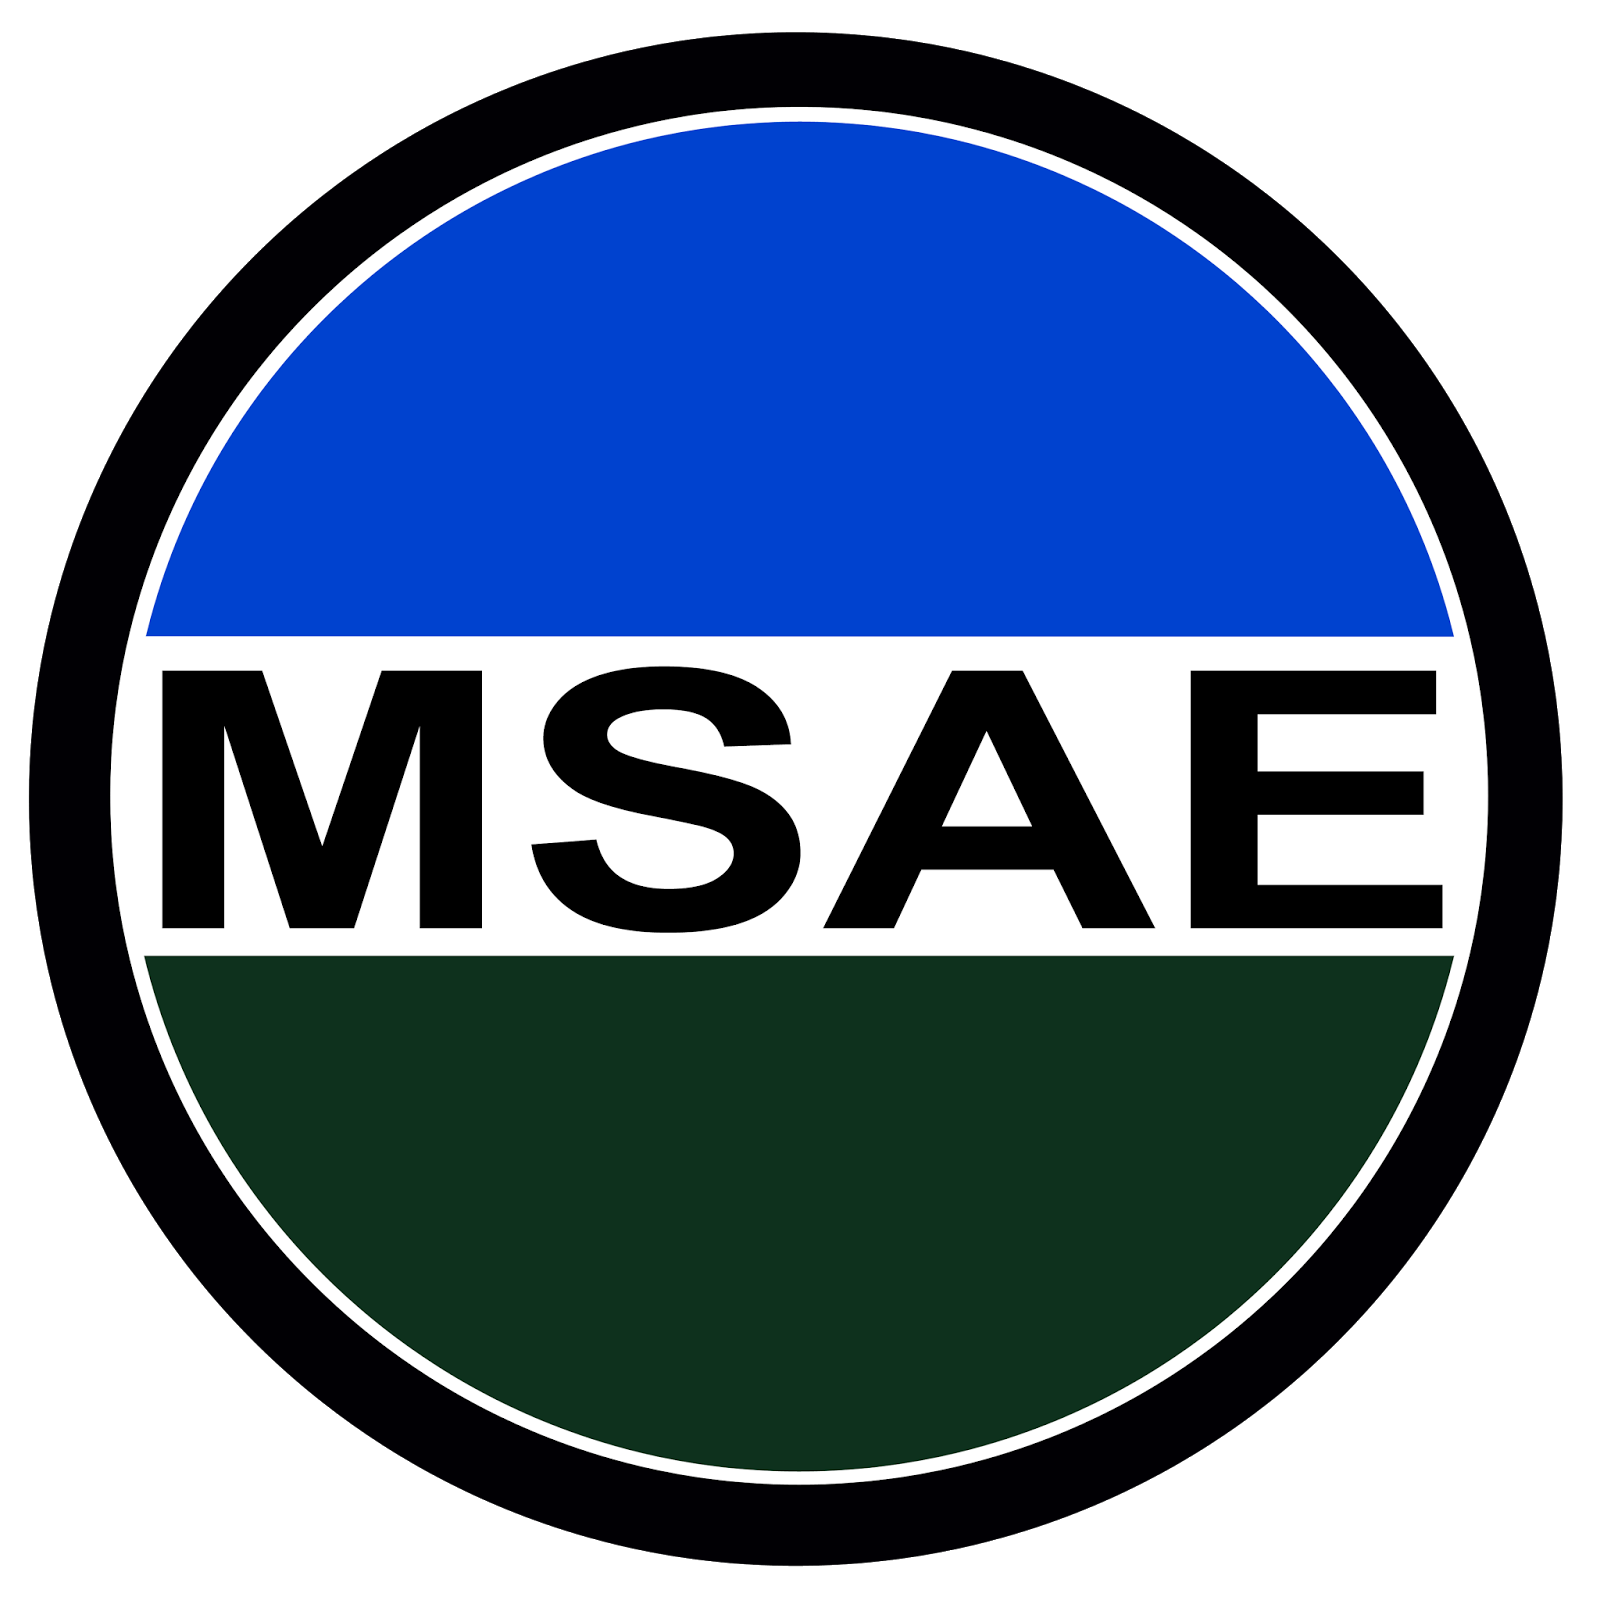 Msae malaysian society of. Engineer clipart agricultural engineering